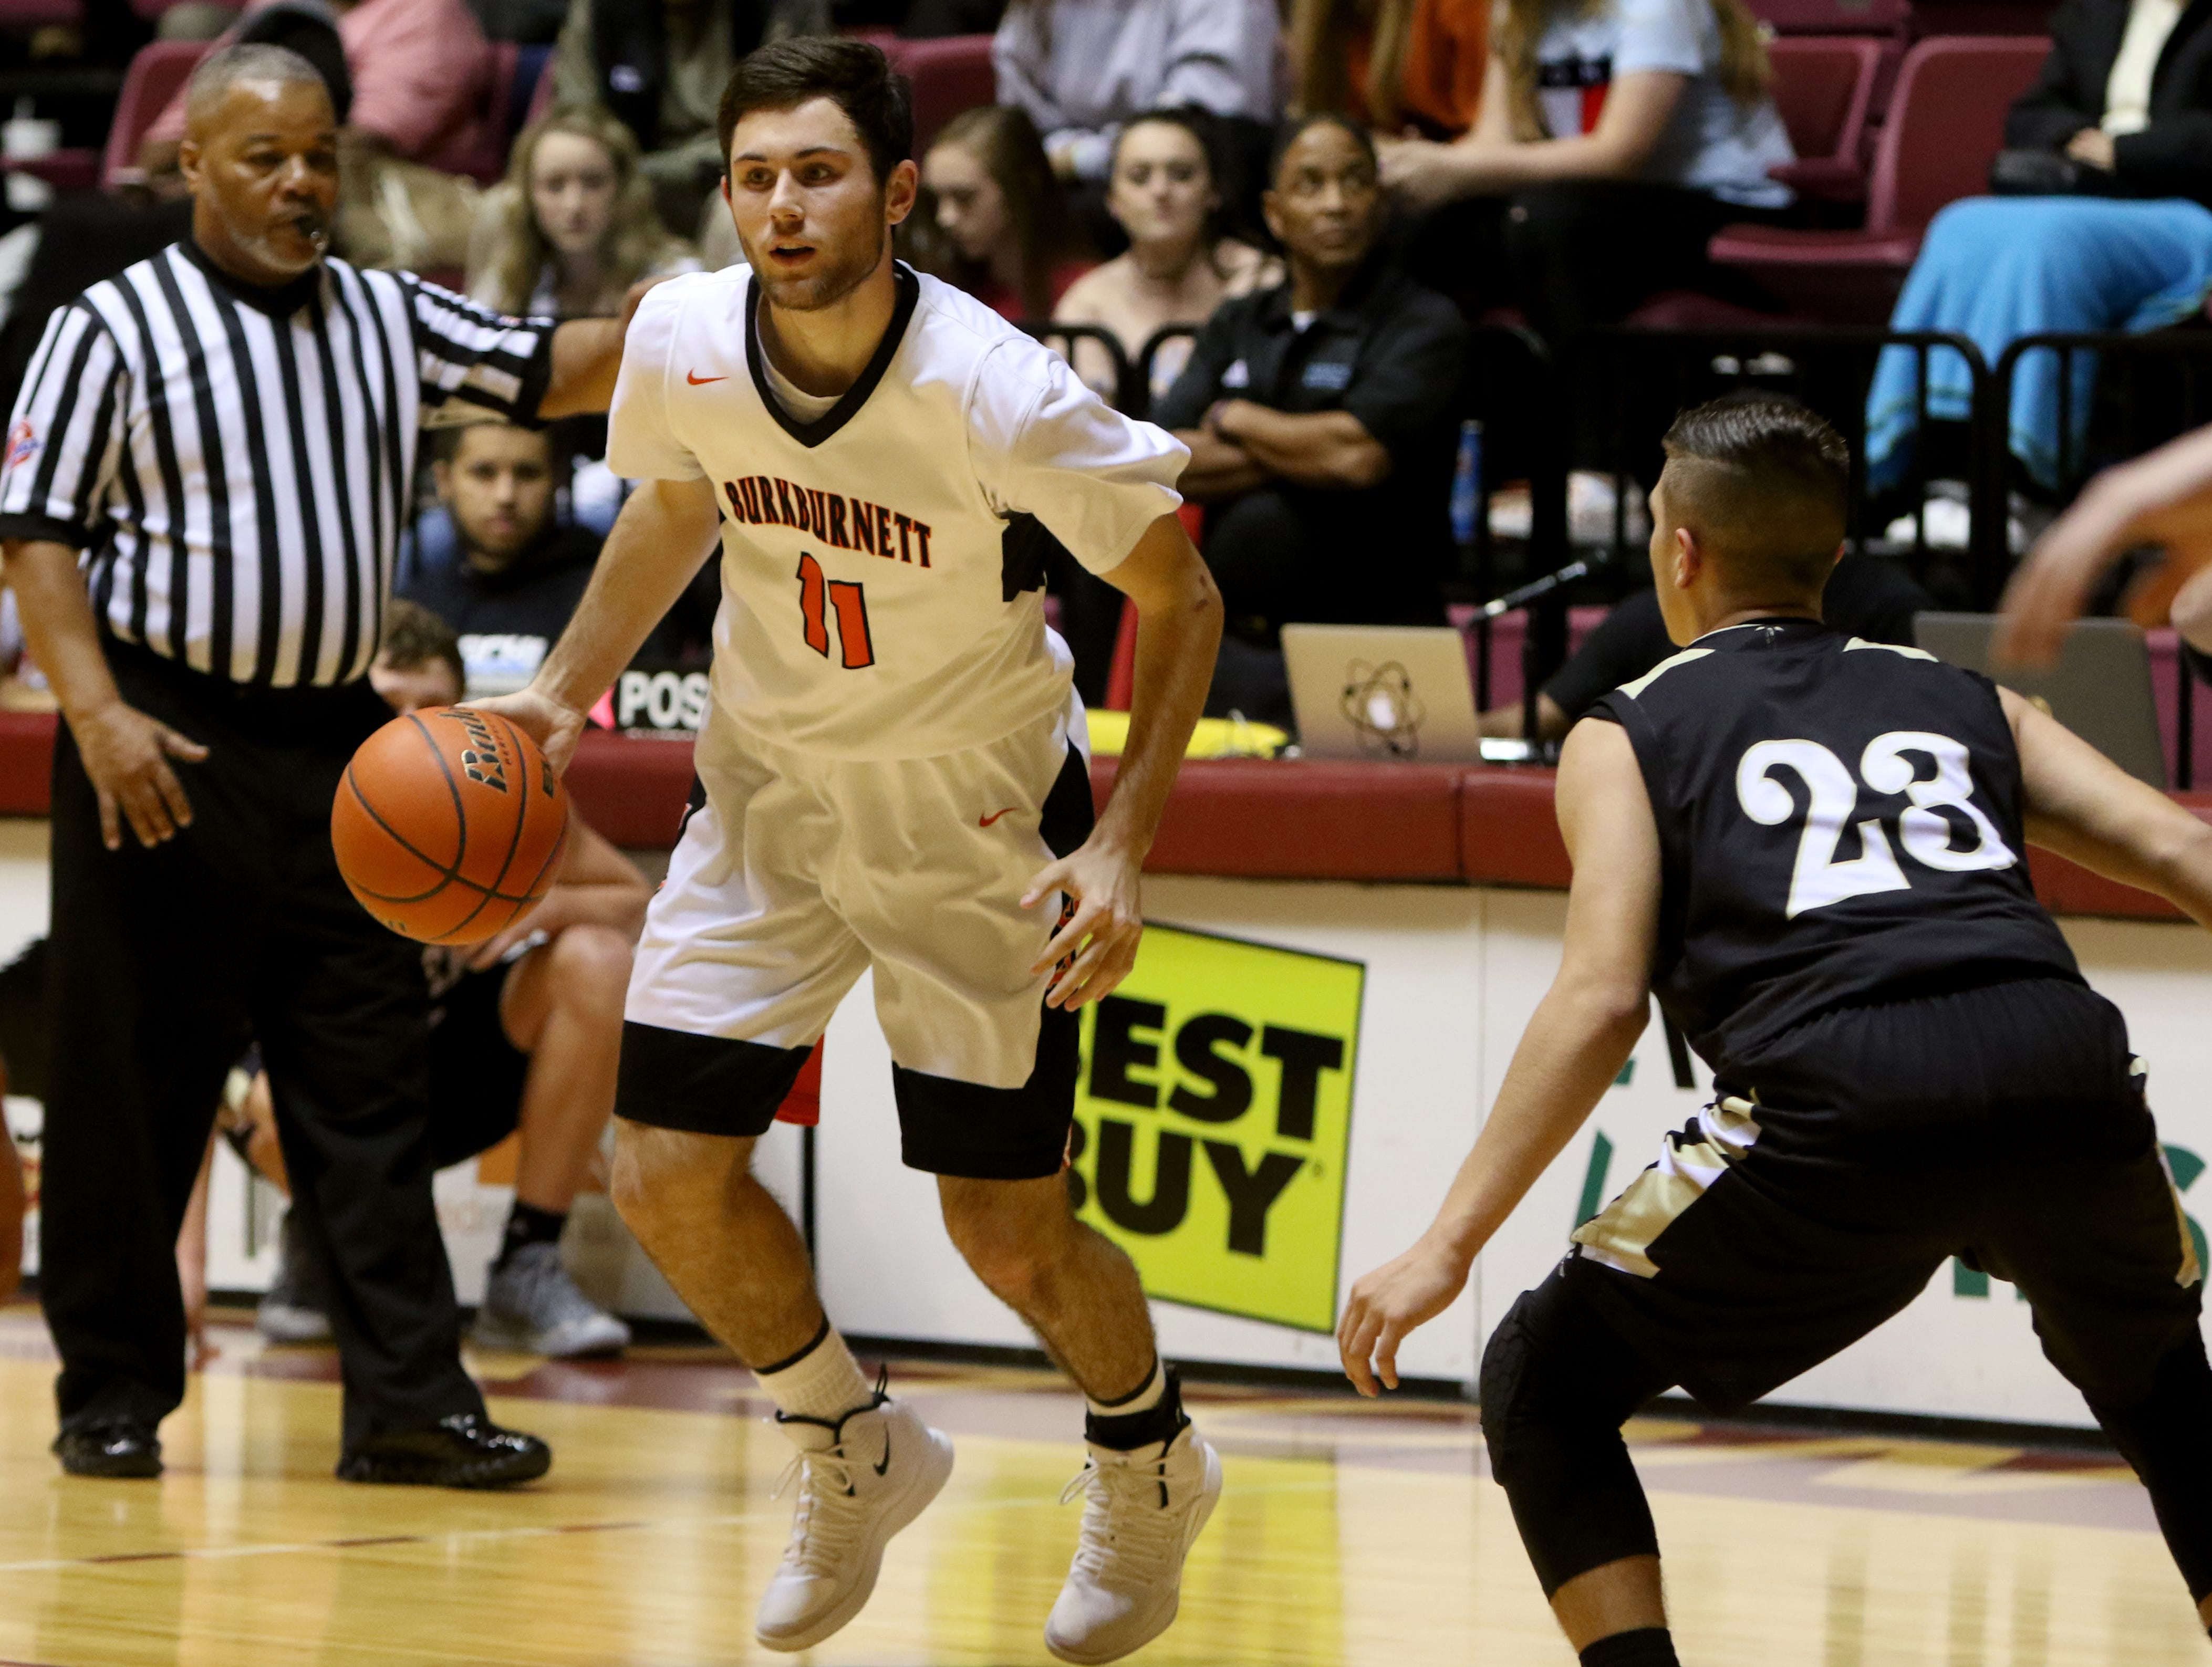 Burkburnett's Gavin Morris dribbles in the Wichita Falls Classic game against Rider Saturday, Dec. 1, 2018, in D.L. Ligon Coliseum at Midwestern State University.